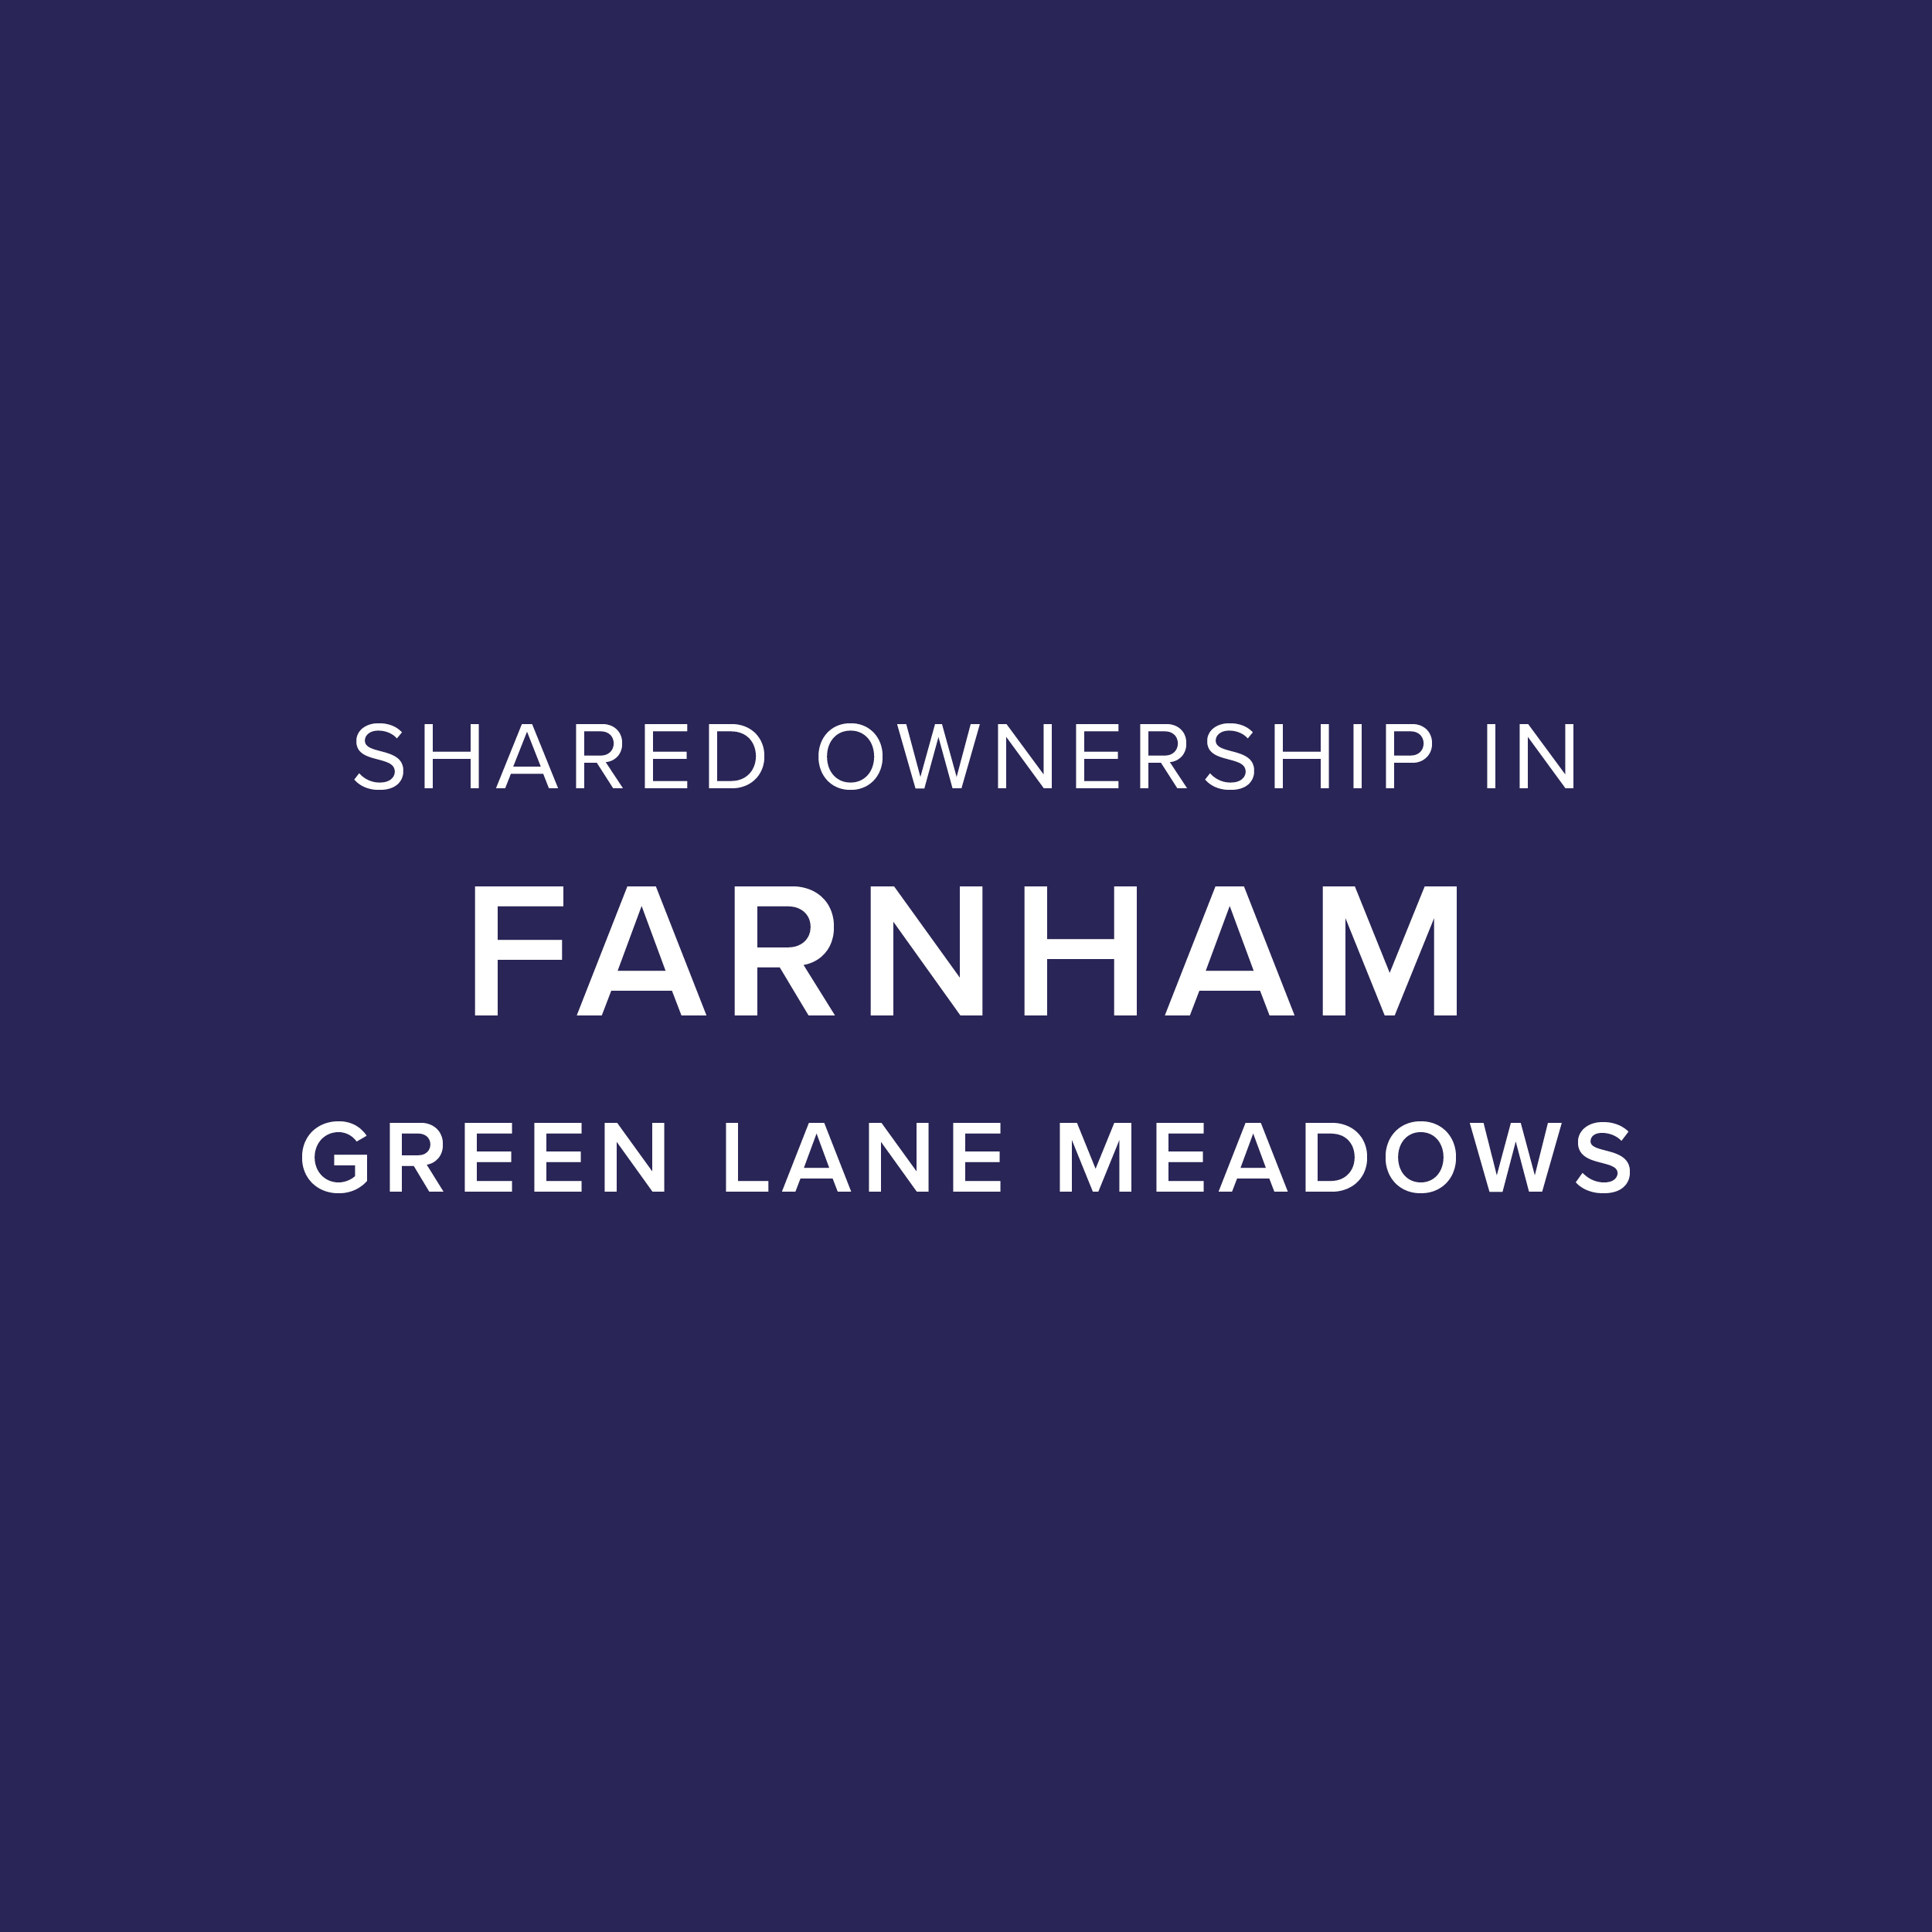 Green Lane Meadows, Farnham